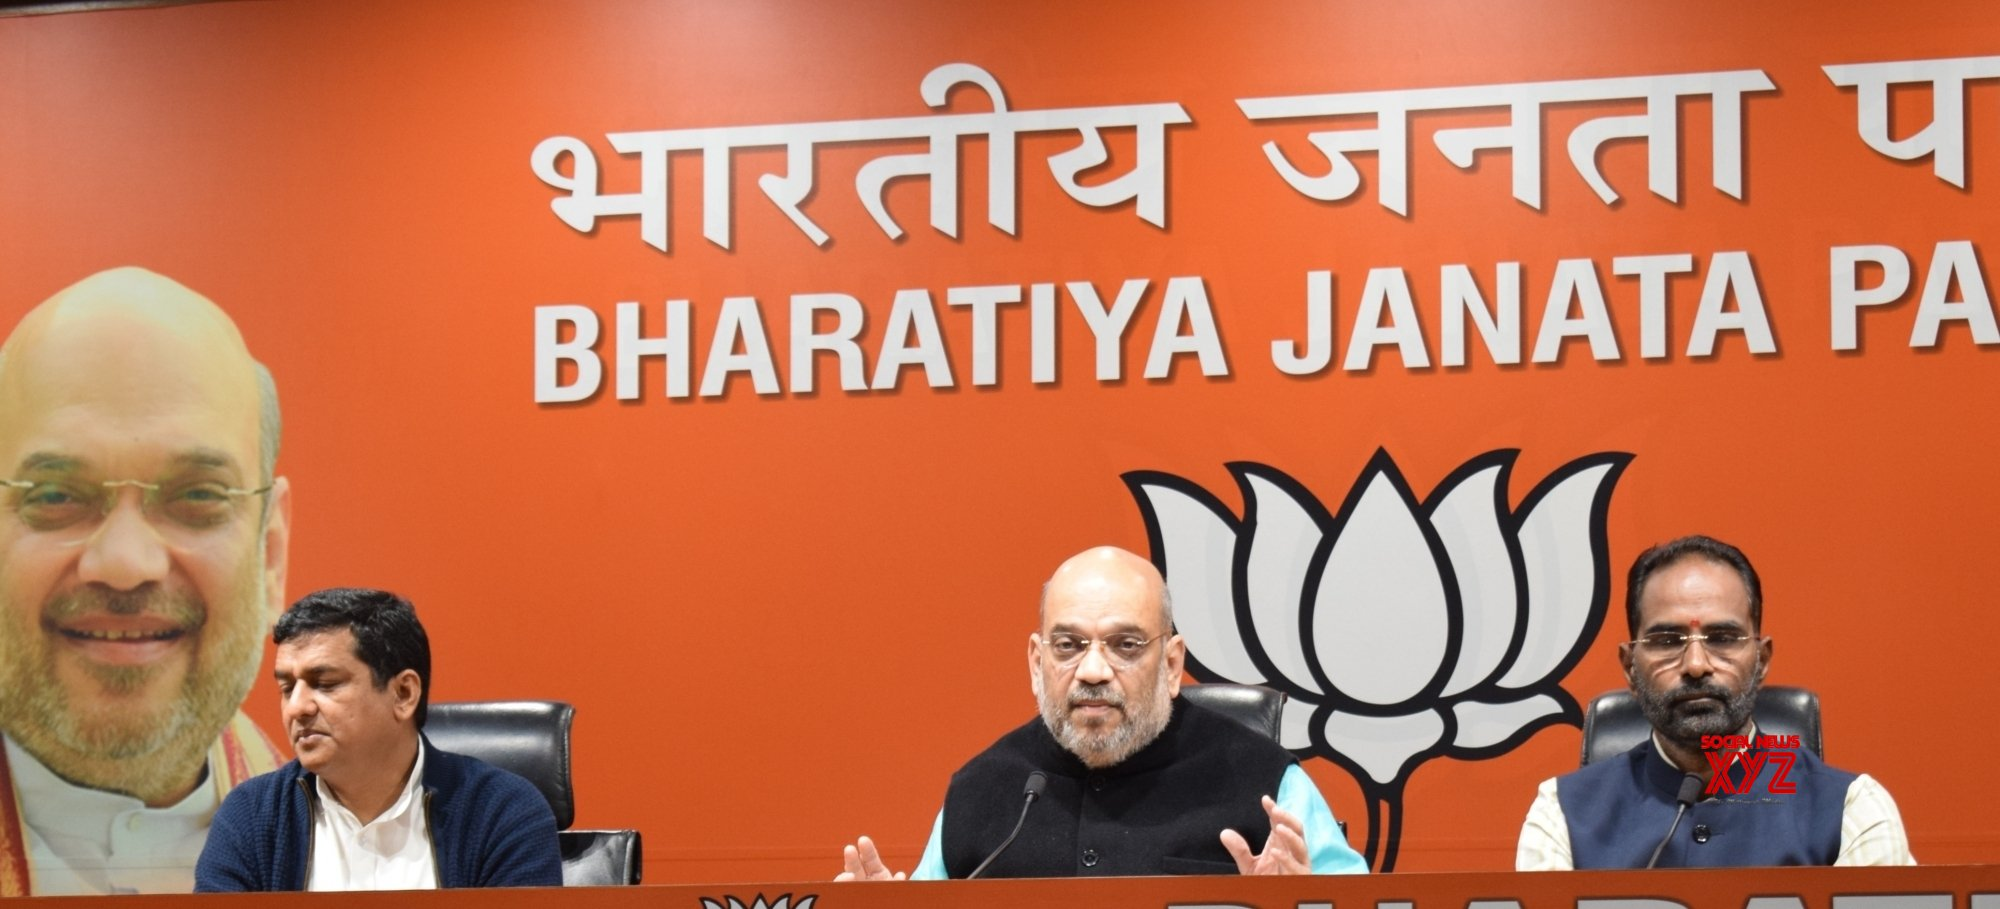 BJP chief vows to take out Bengal Rath Yatra 'democratically'